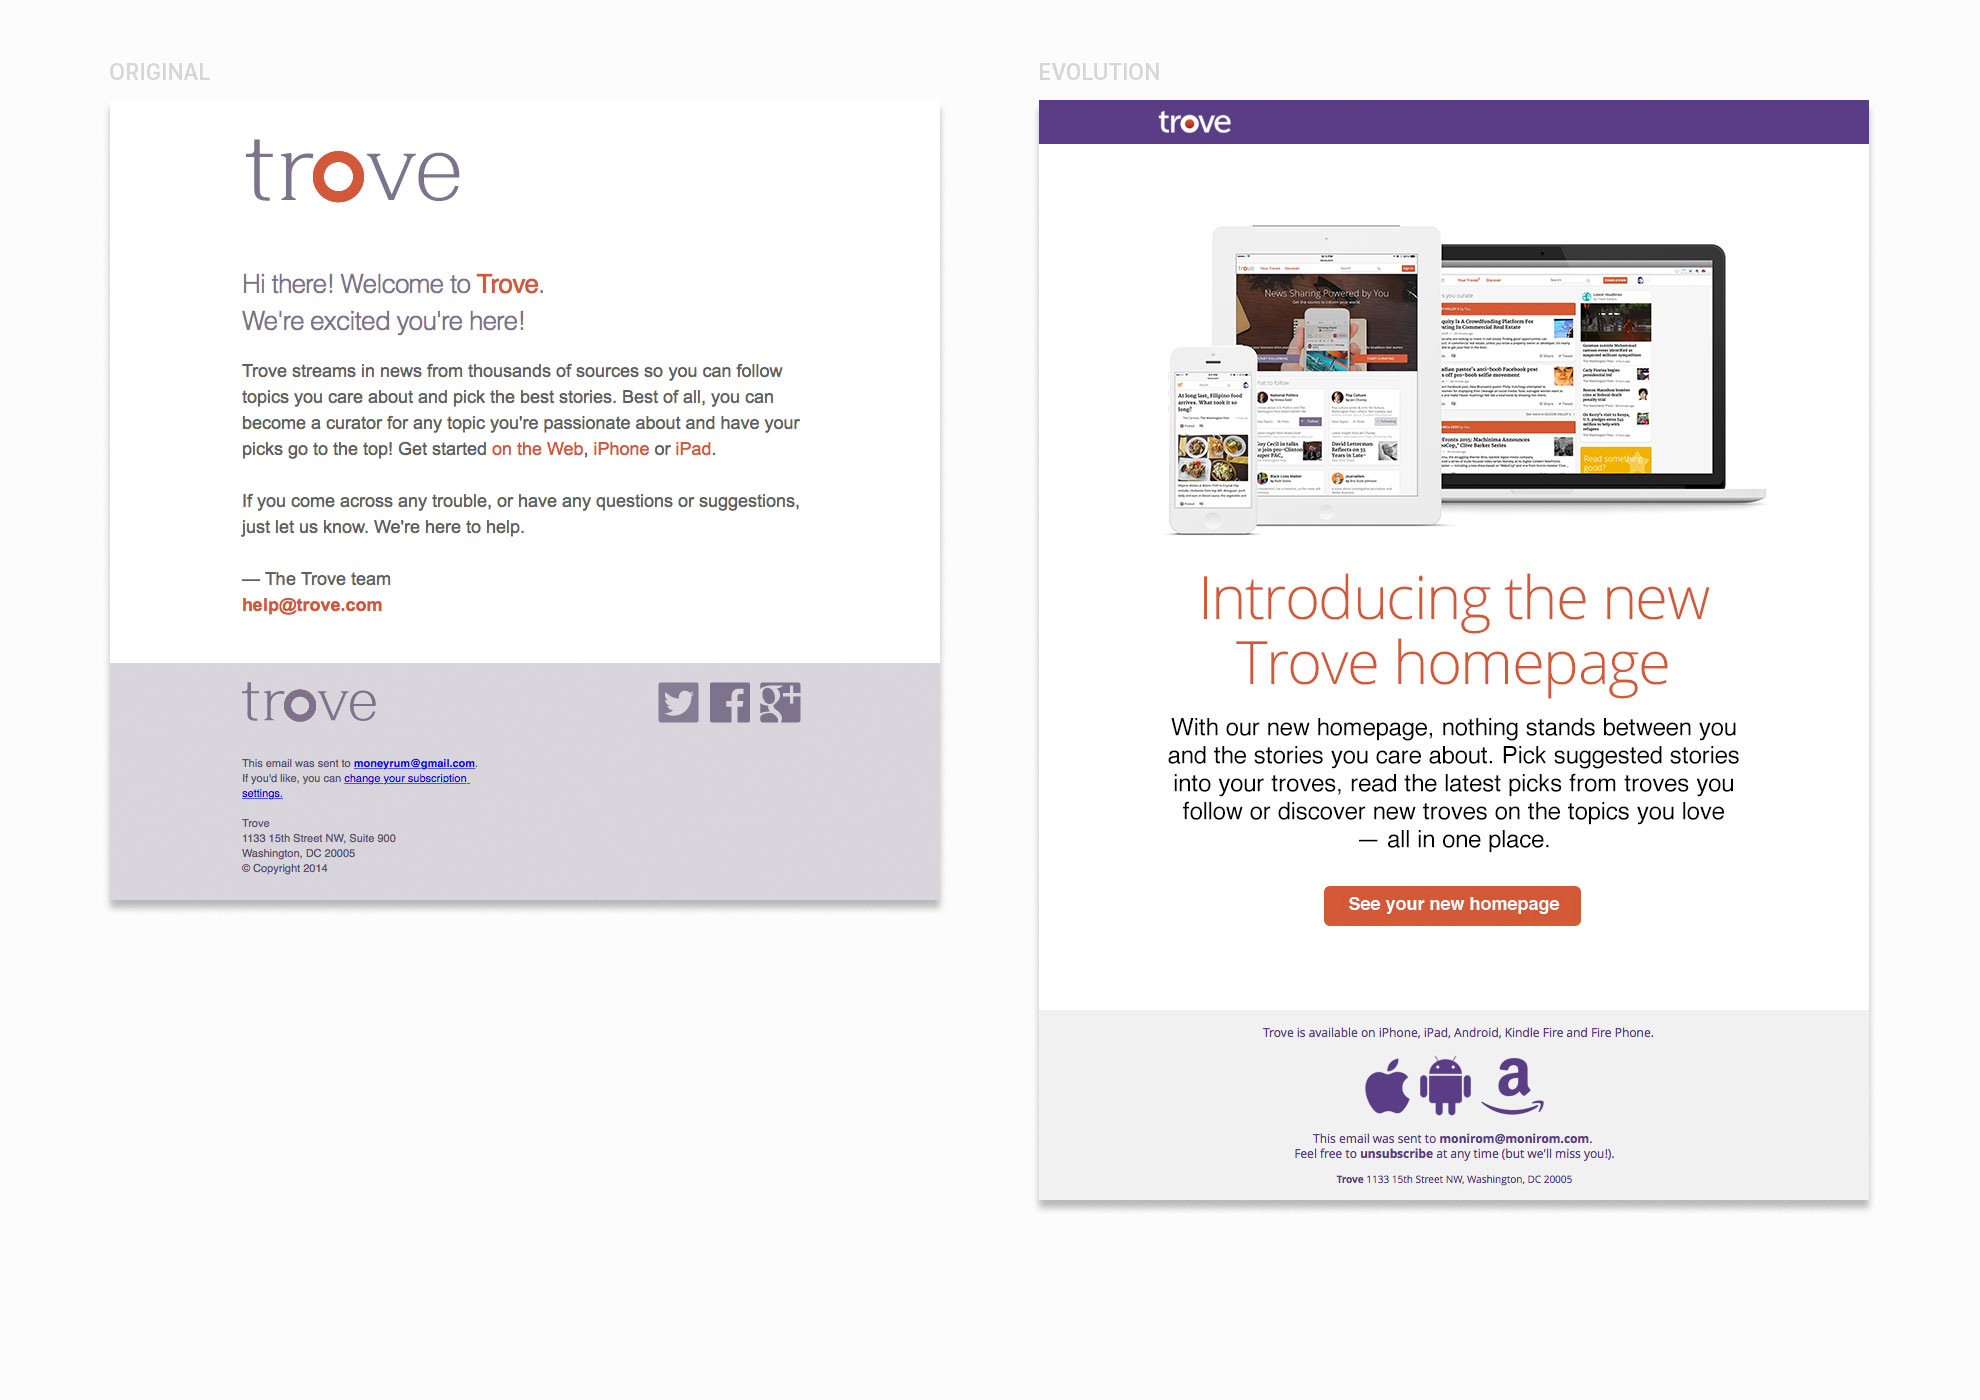 Trove E-mails Compare Before-After-01.jpg